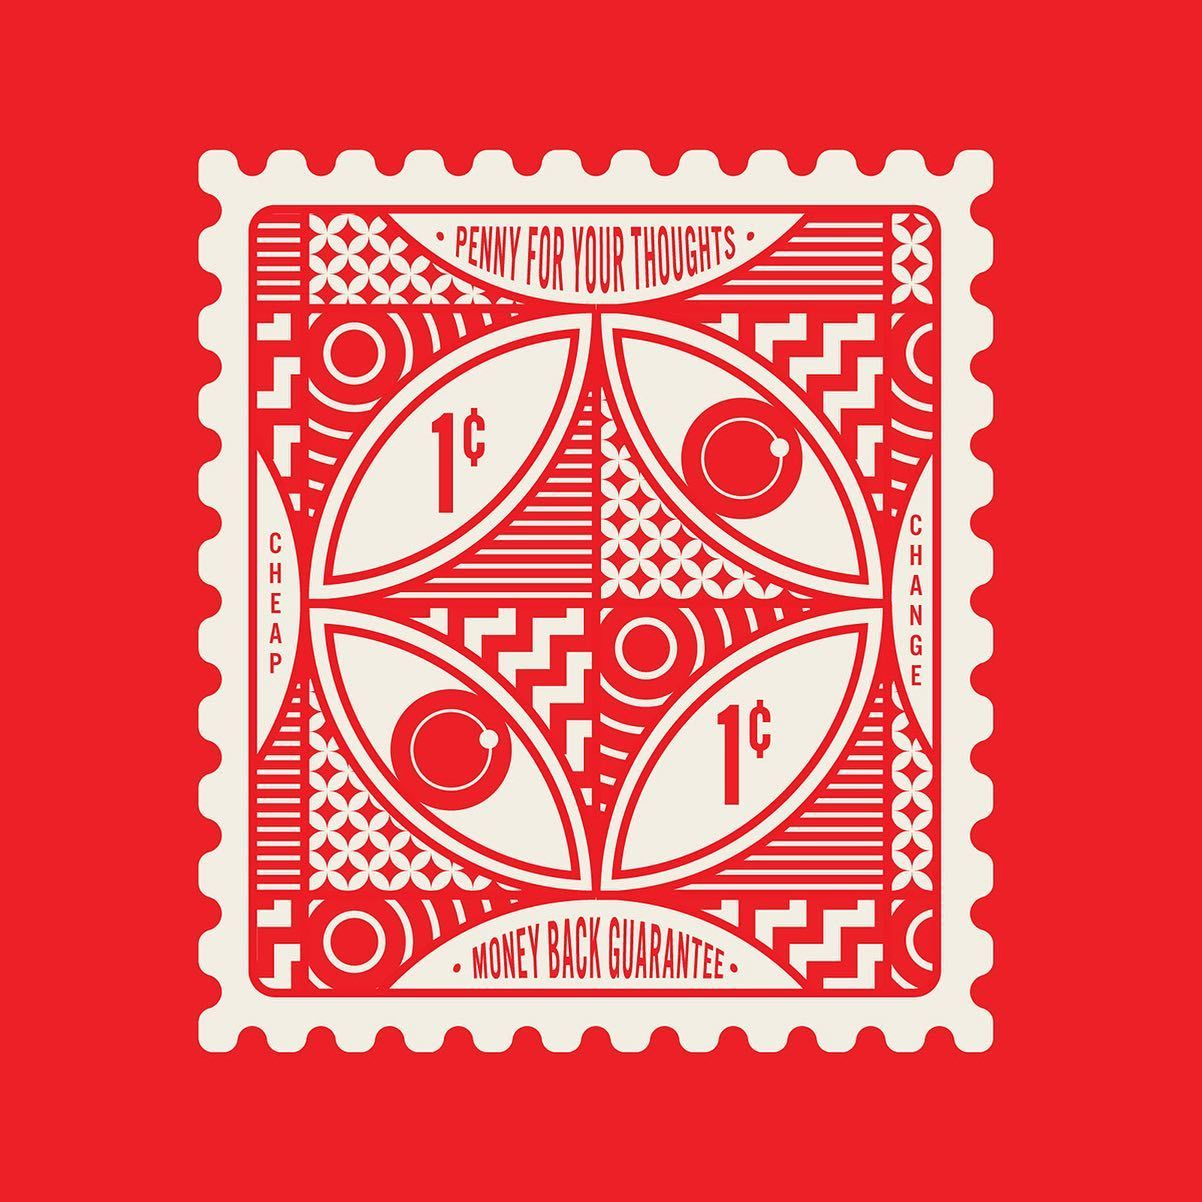 Postal Stamps Designed By Trufcreative